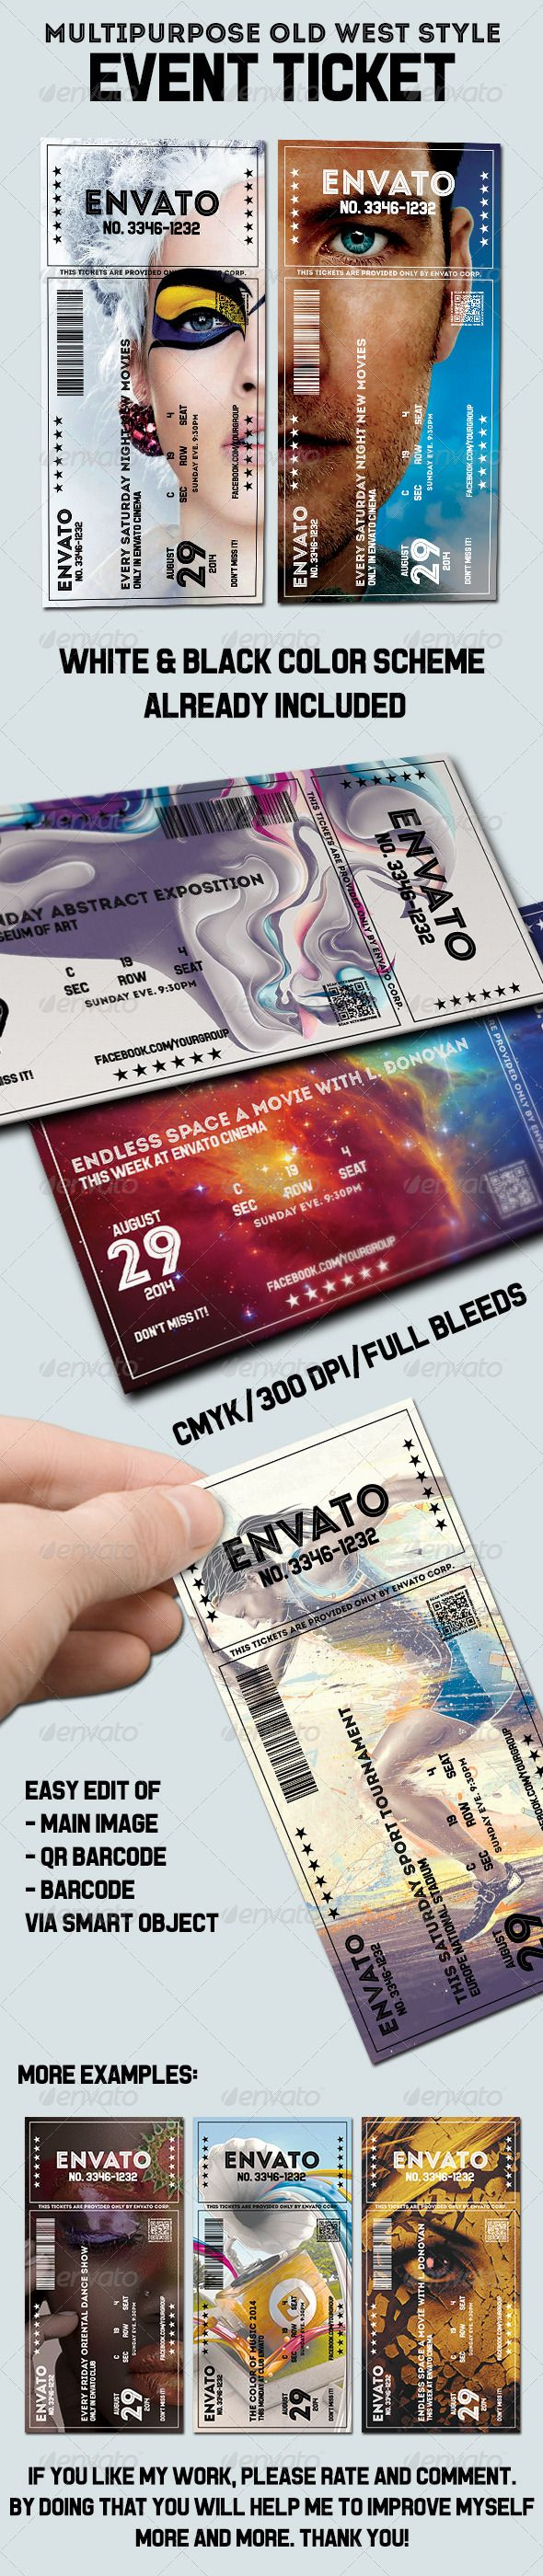 Concert Ticket Template Free Download Cool 19 Best Voucher Images On Pinterest  Gift Voucher Design Gift .